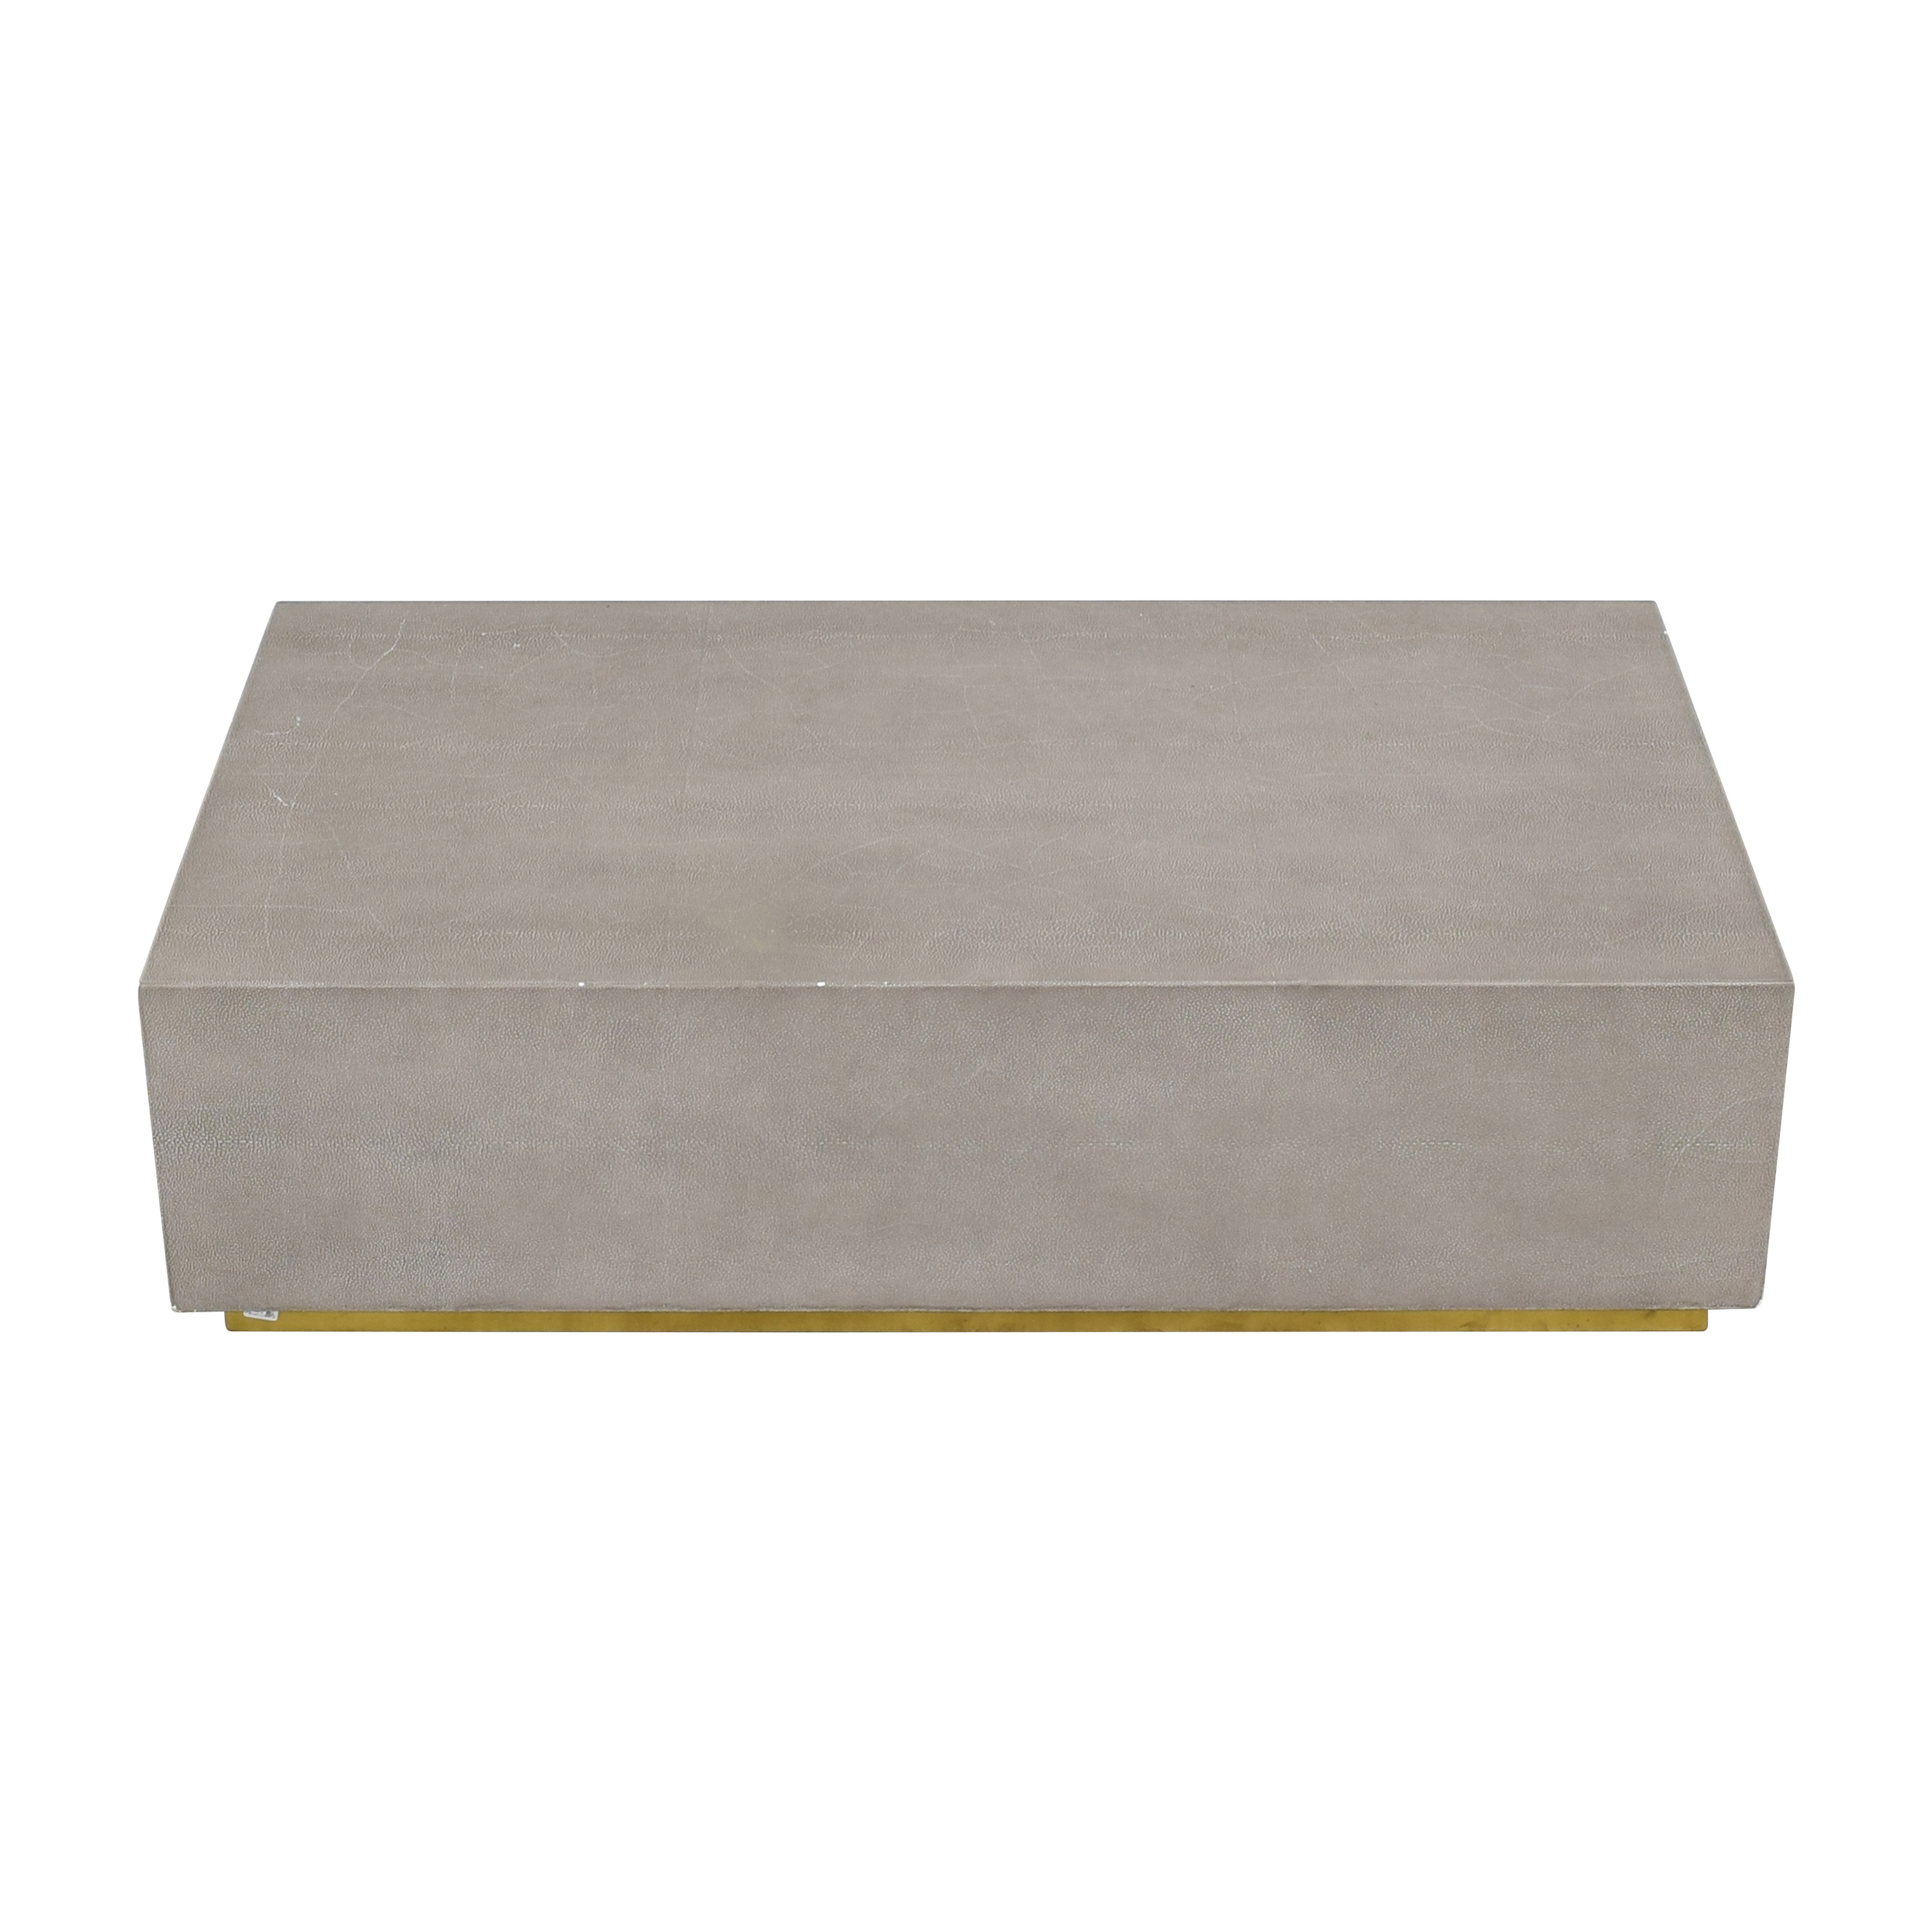 Restoration Hardware Restoration Hardware Graydon Shagreen Plinth Coffee Table for sale